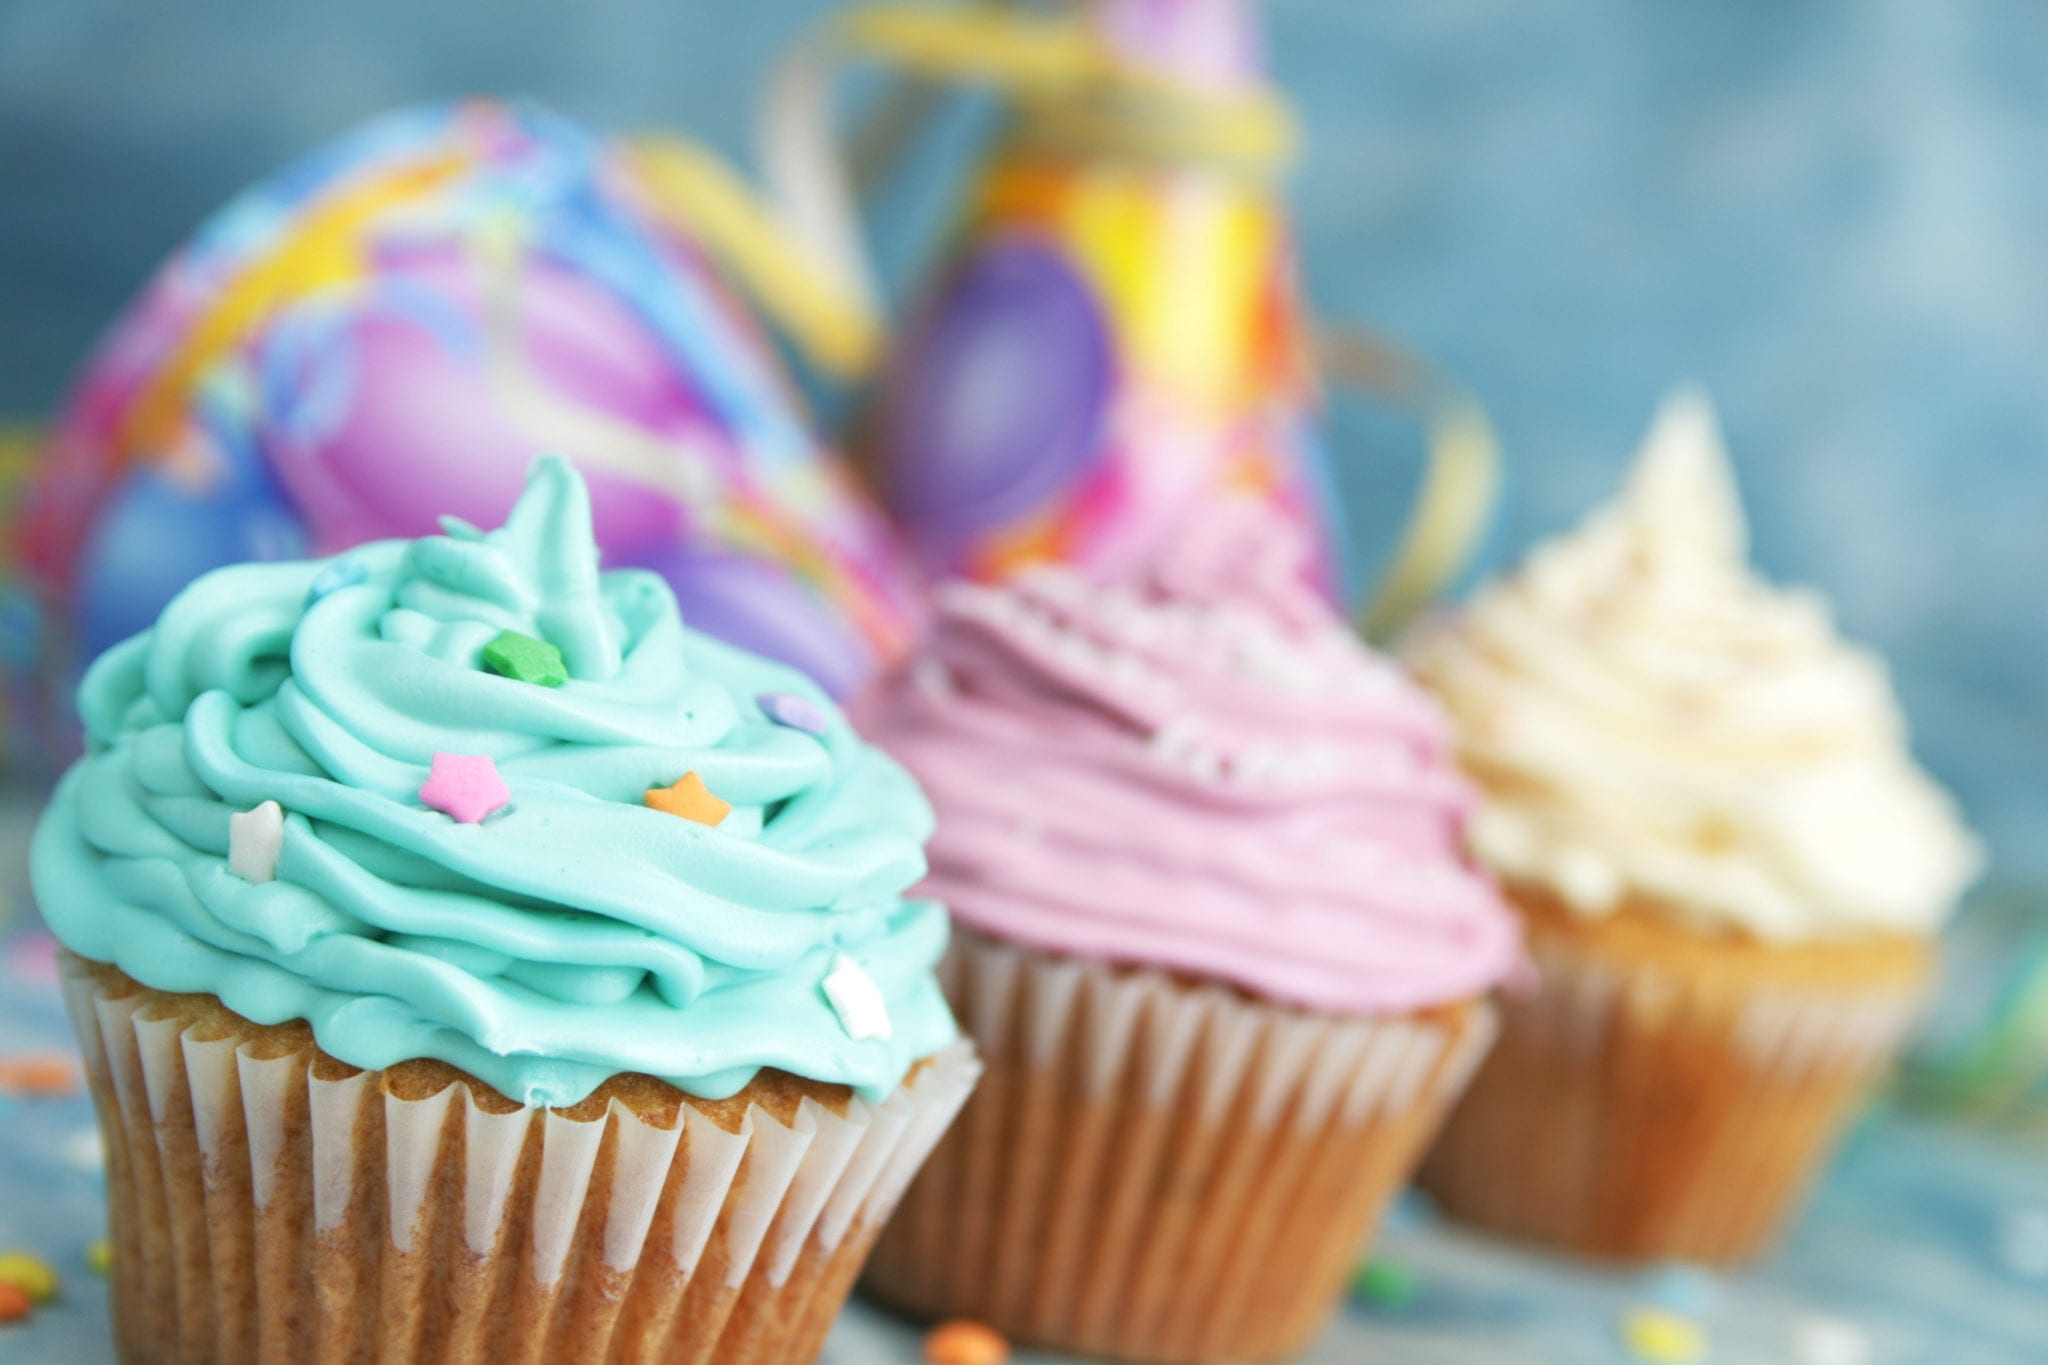 mouth-watering-offer-for-national-cupcake-week.jpg